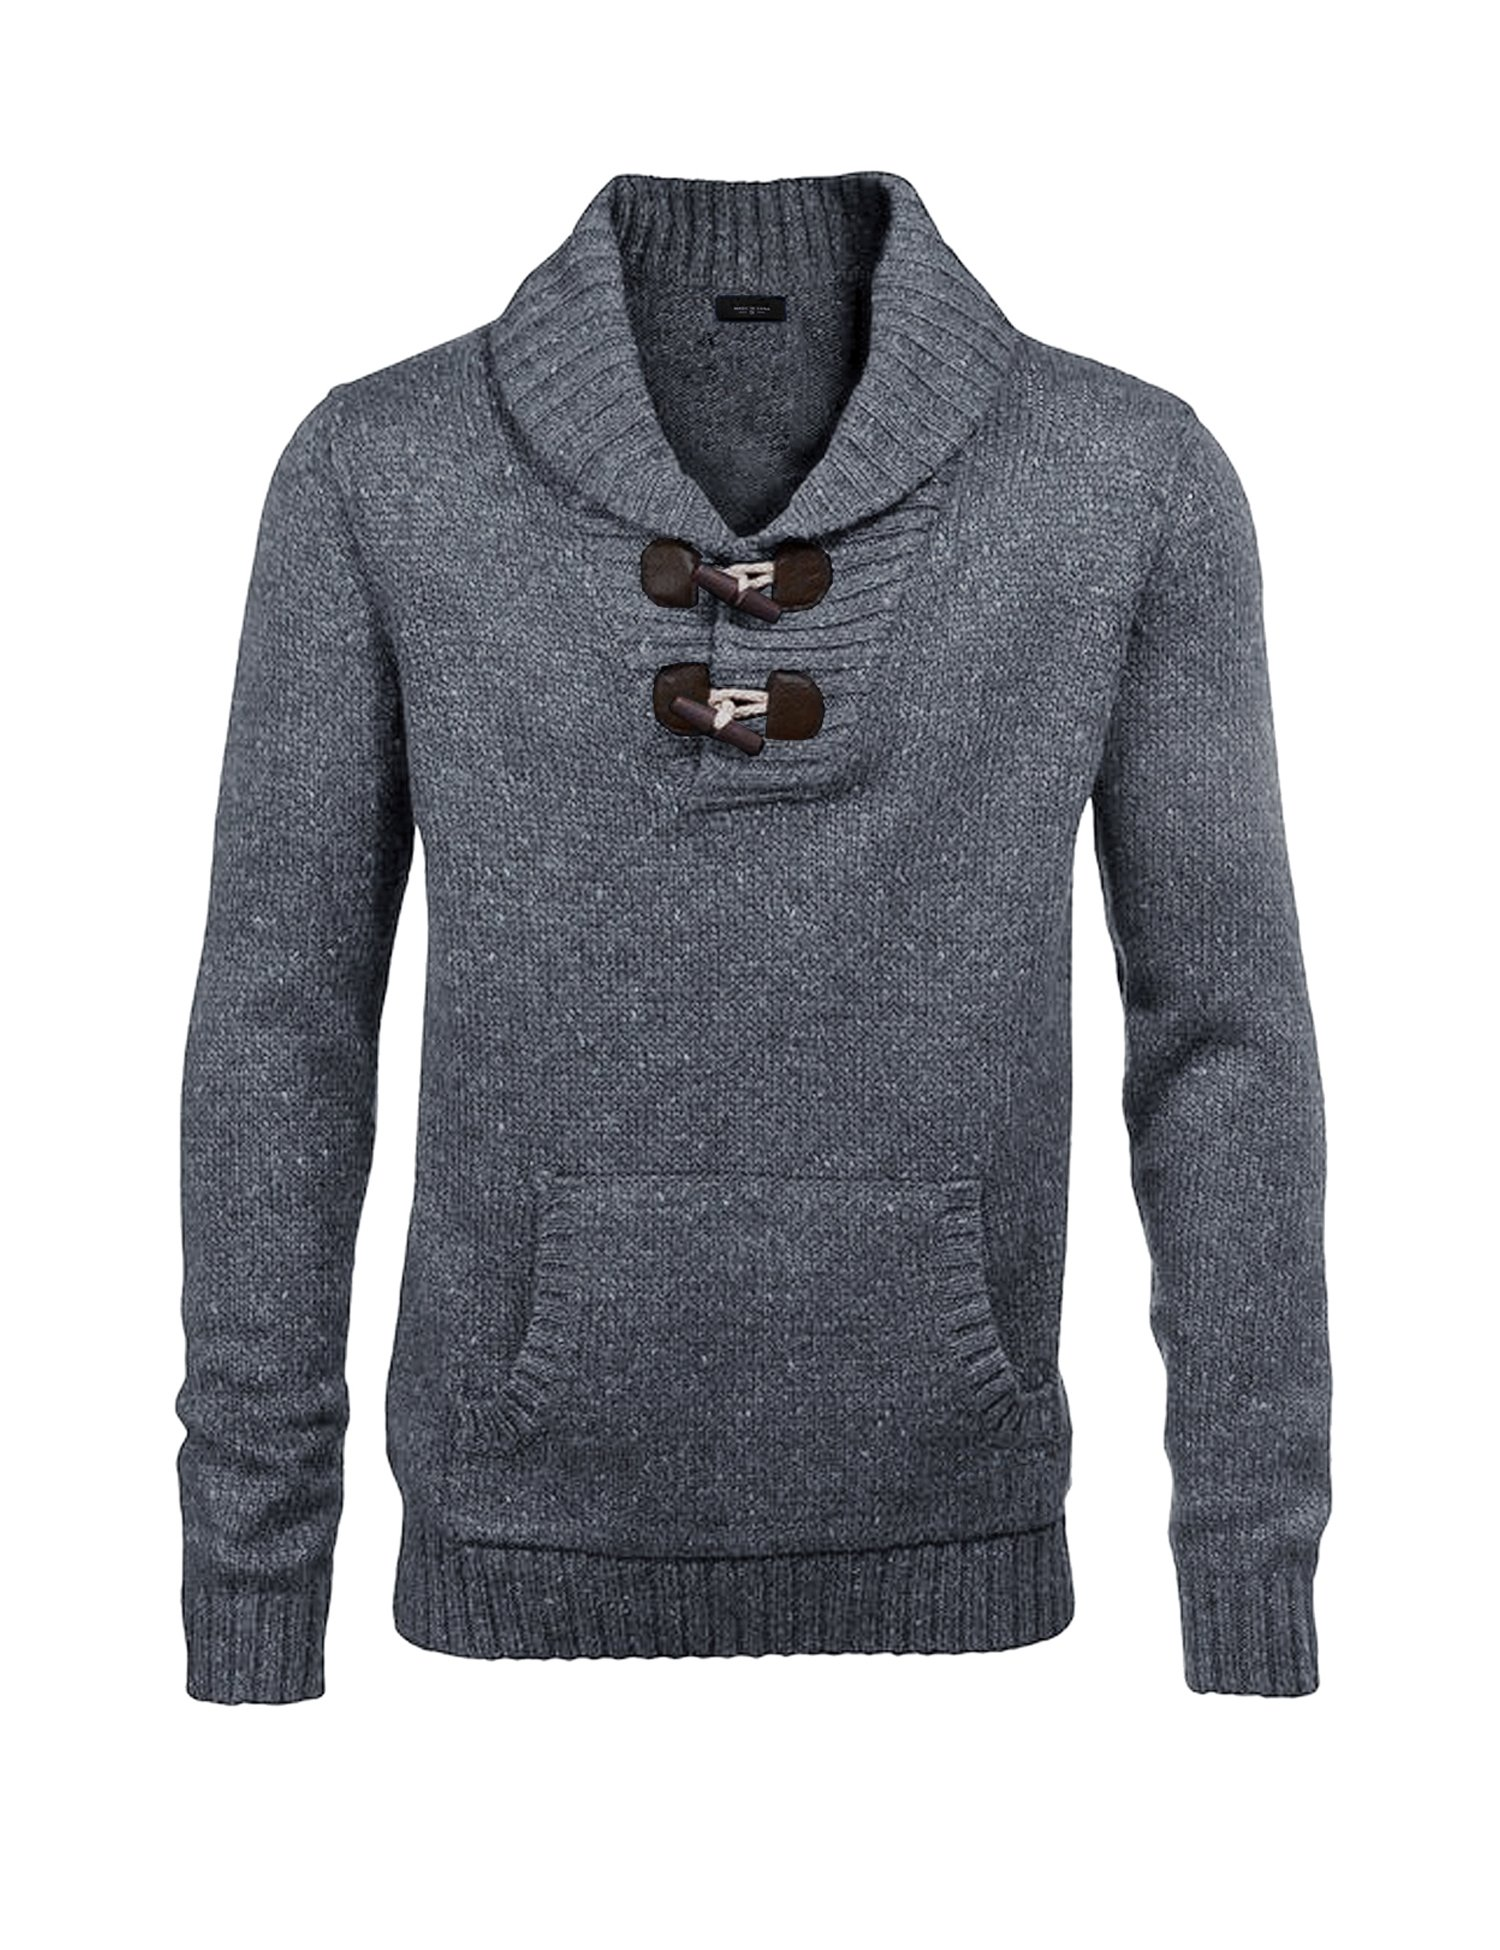 Jinidu Men's Knitted Slim Fit Shawl Collar Sweater Long Sleeve Pullover